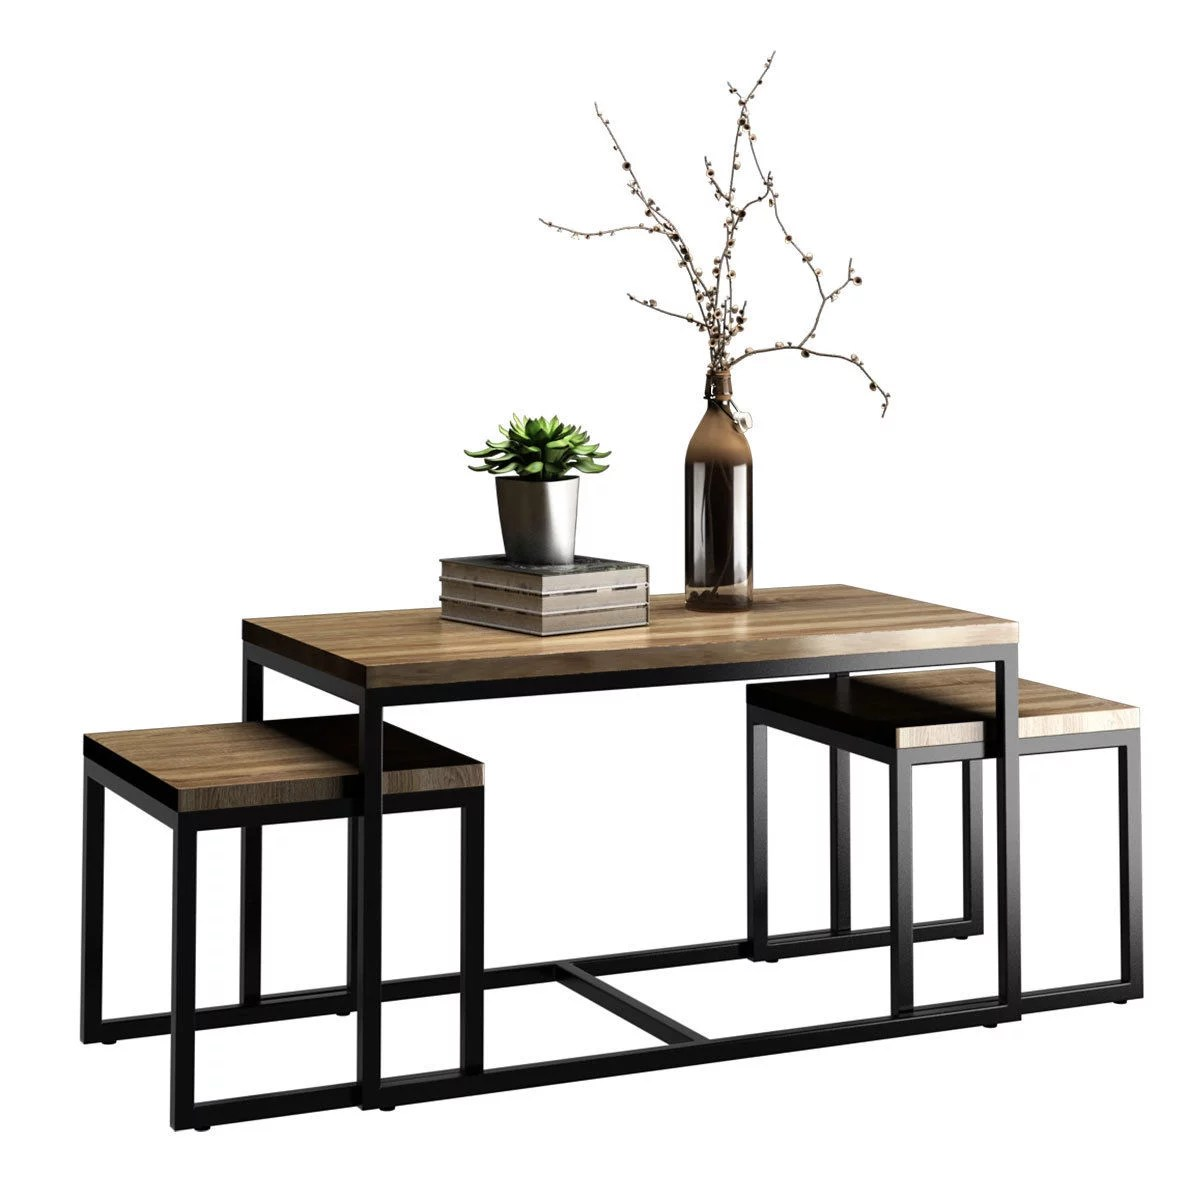 3 piece living room table set interior design pictures nesting coffee end wood modern qty